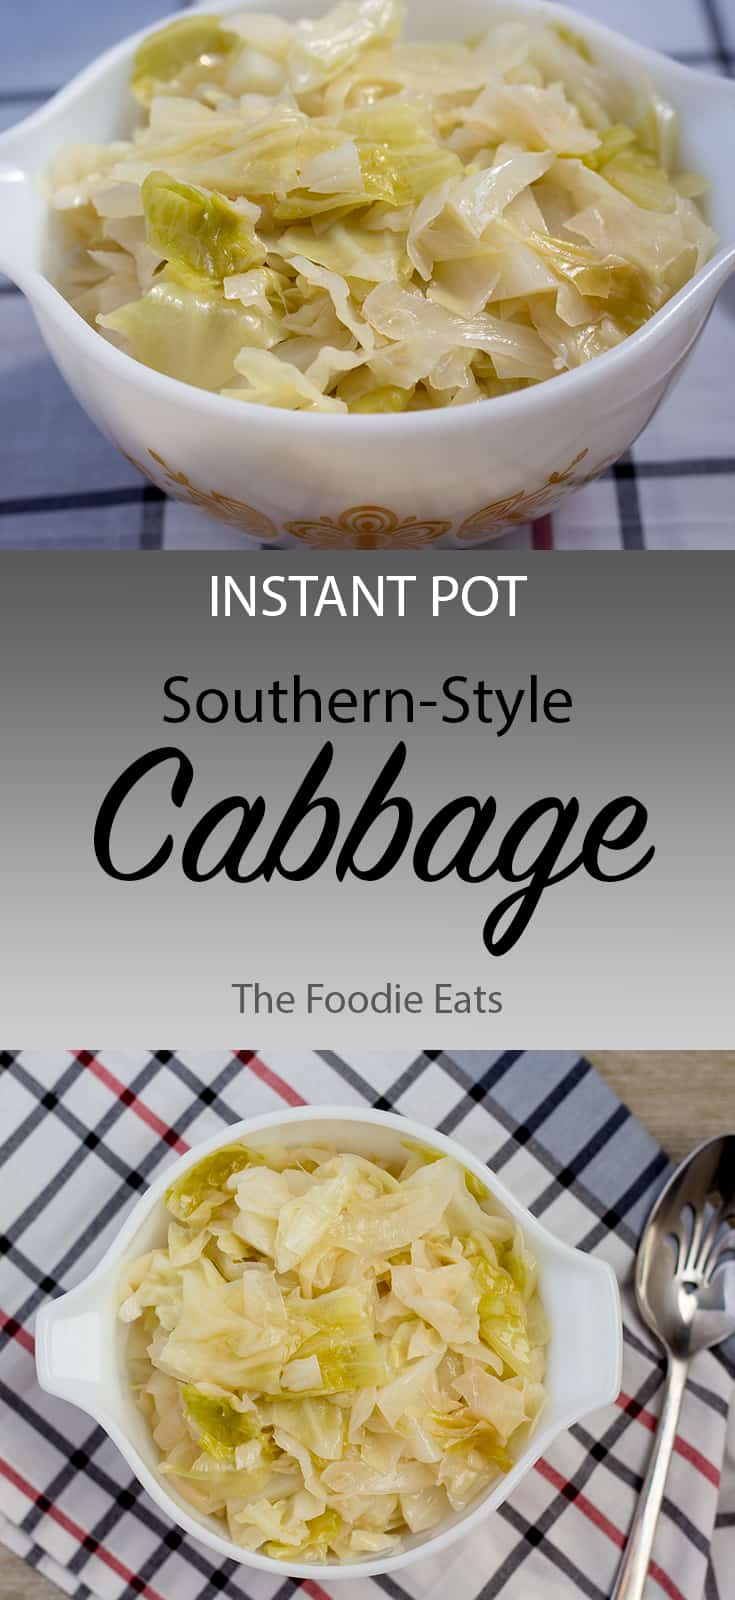 Instant Pot Cabbage | The Foodie Eats